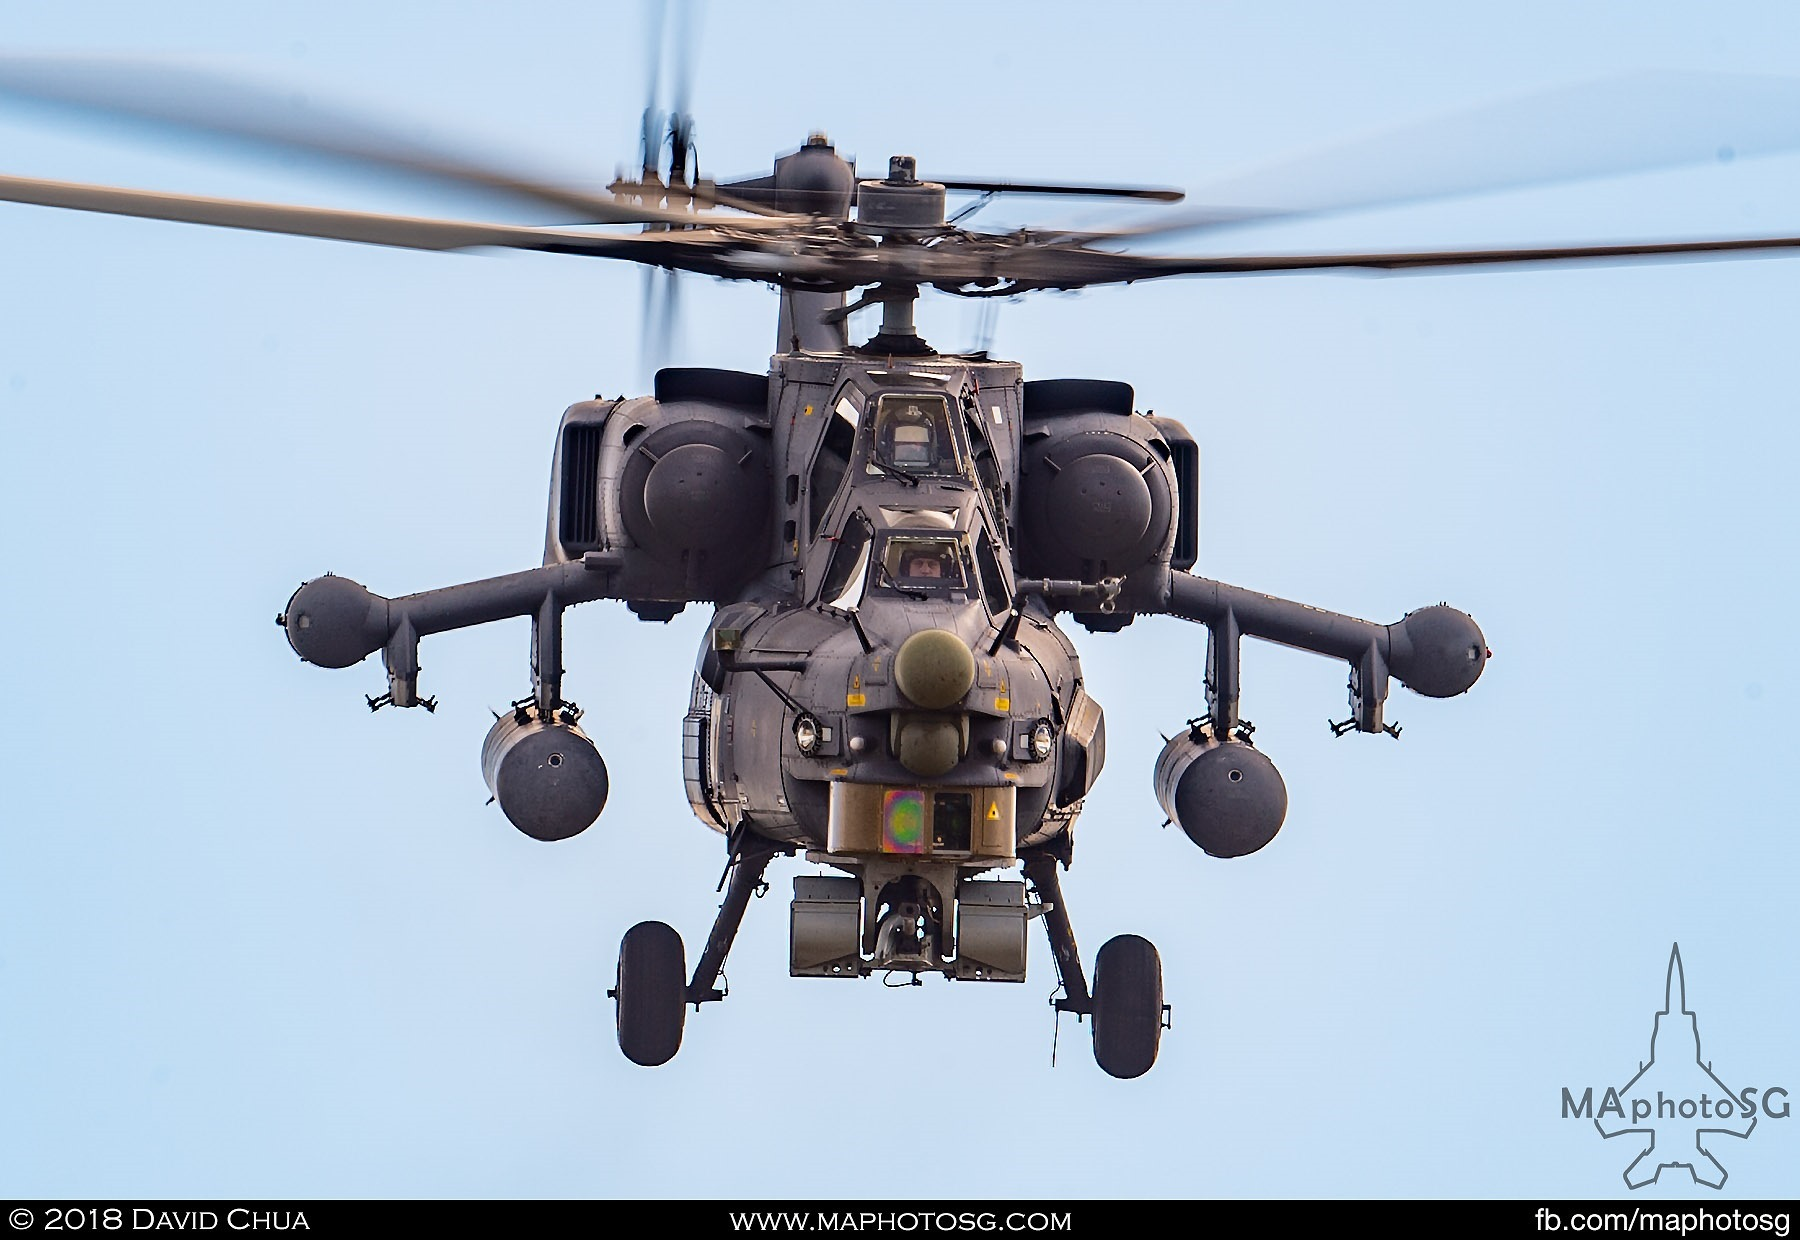 "45. Frontal view of the Mi-28n ""Night Stalker"" attack helicopter"